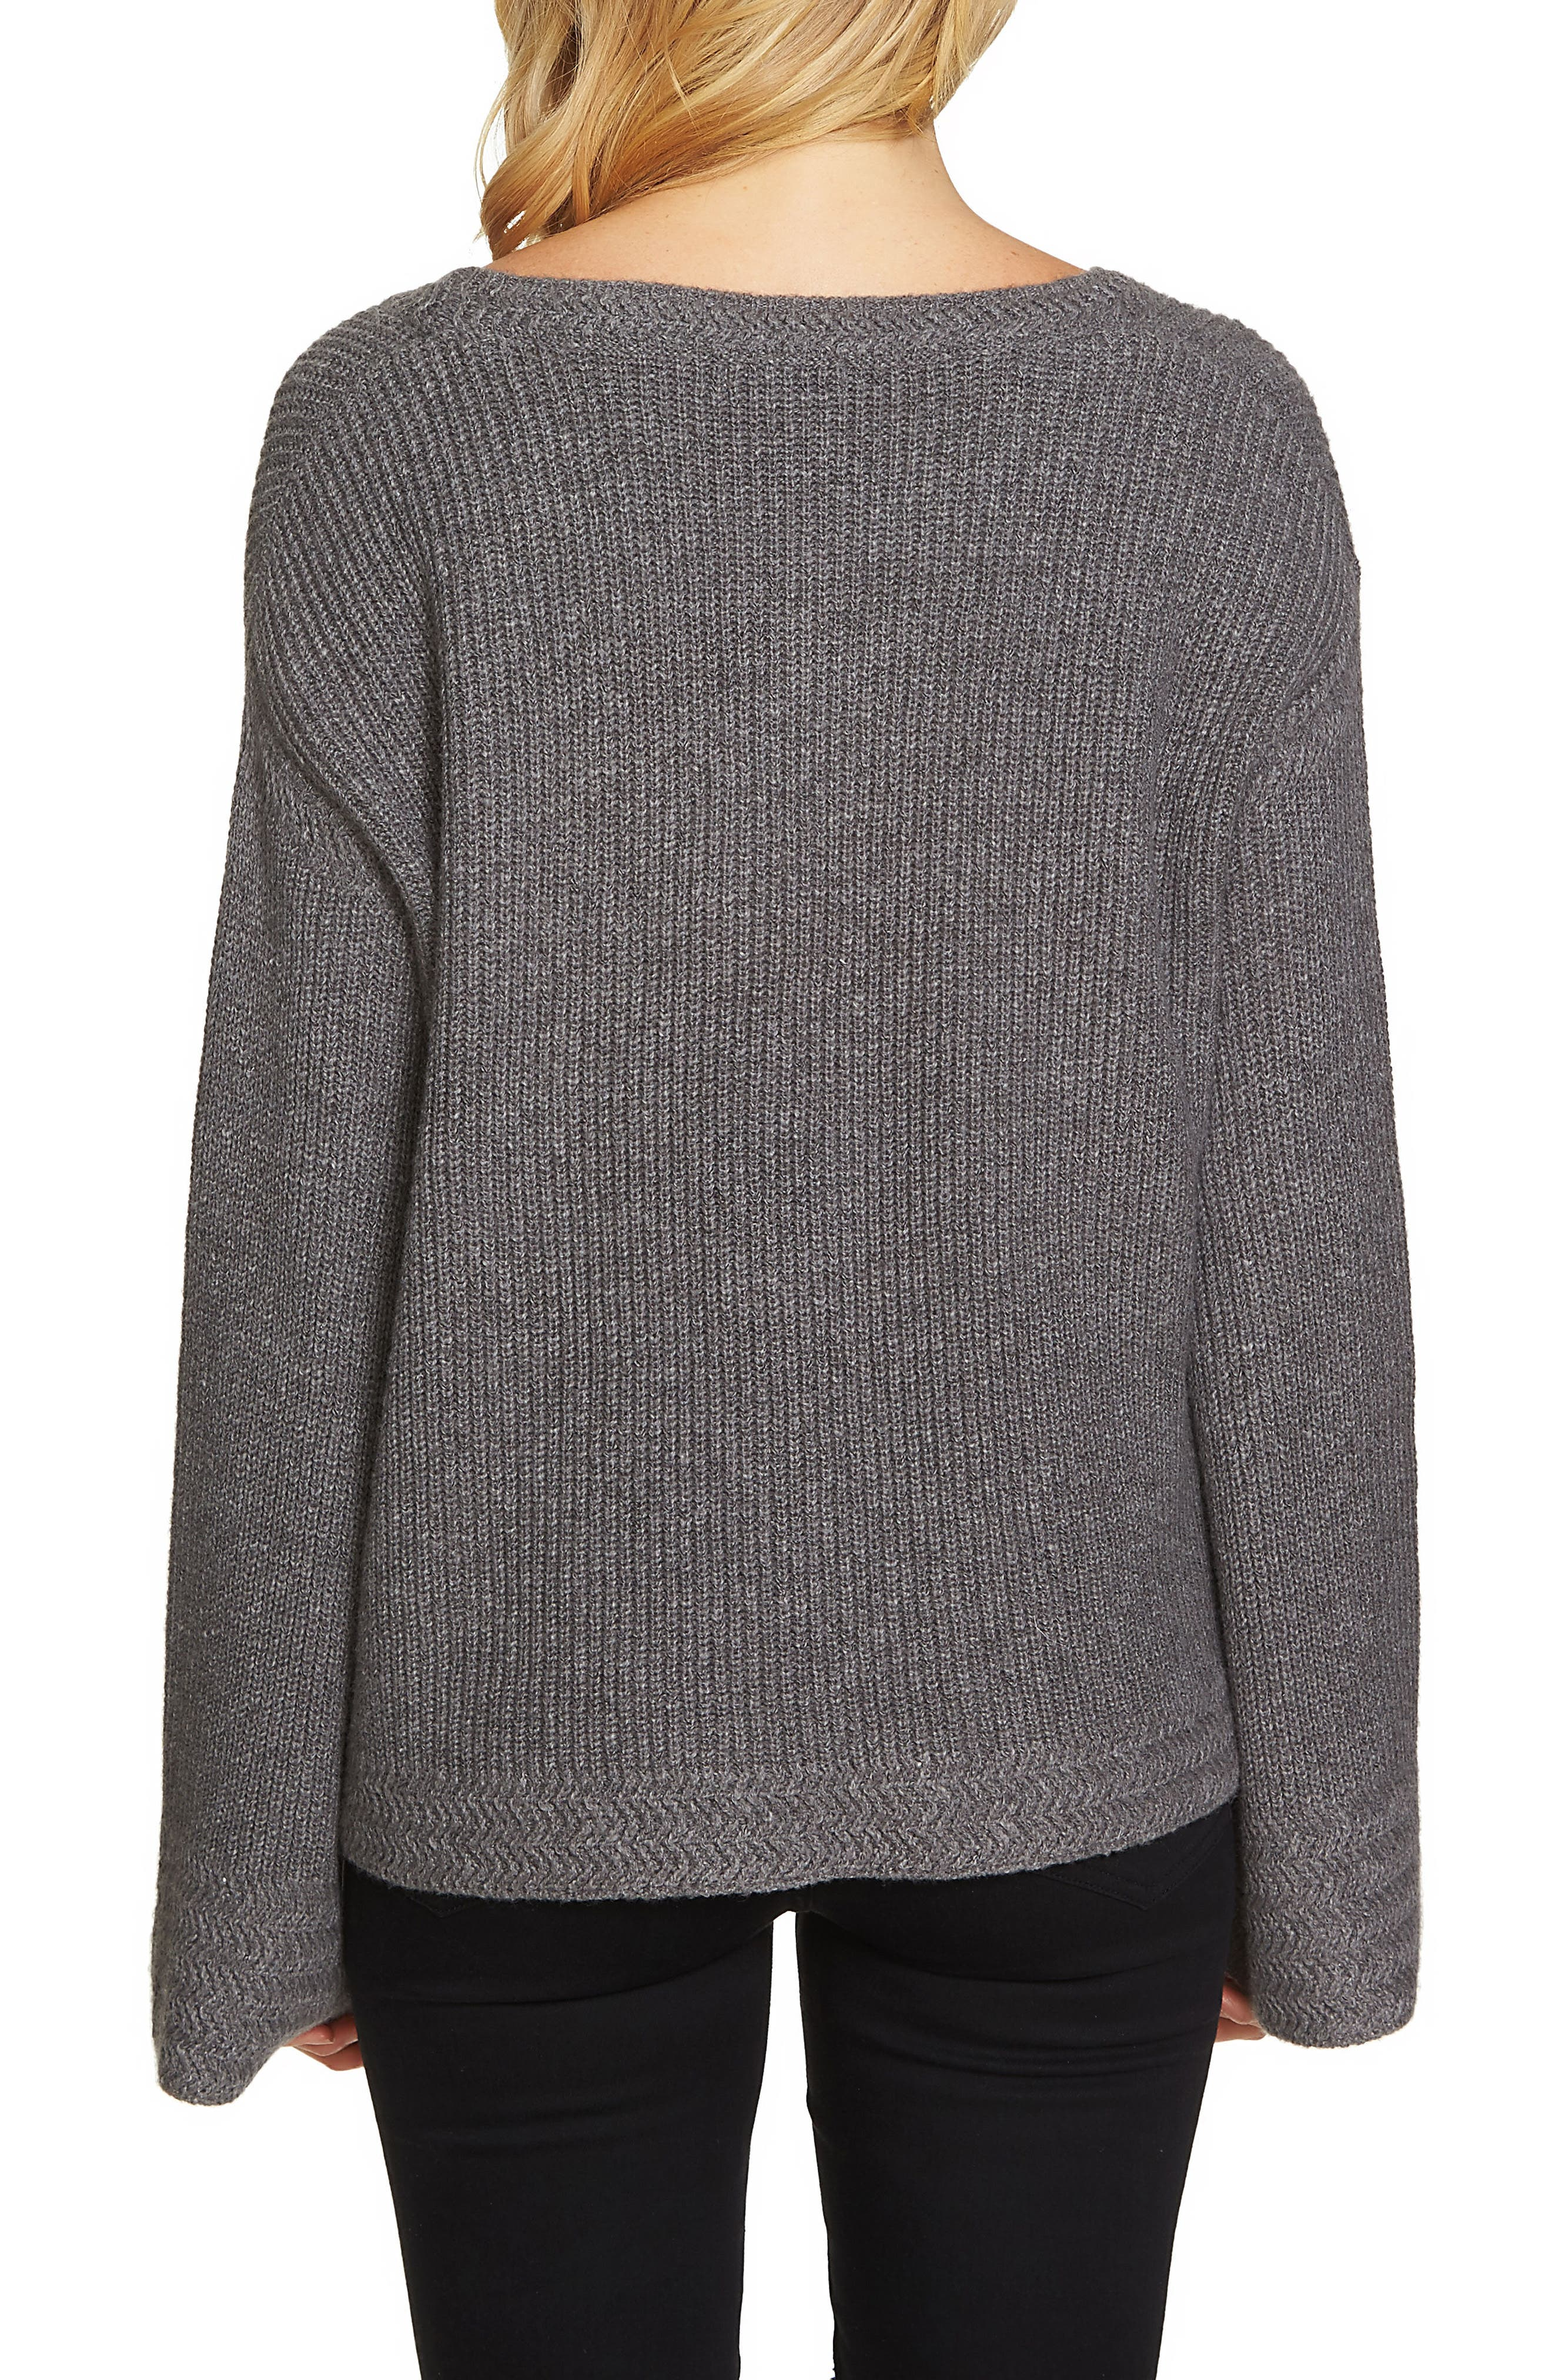 Bell Sleeve Sweater,                             Alternate thumbnail 2, color,                             021